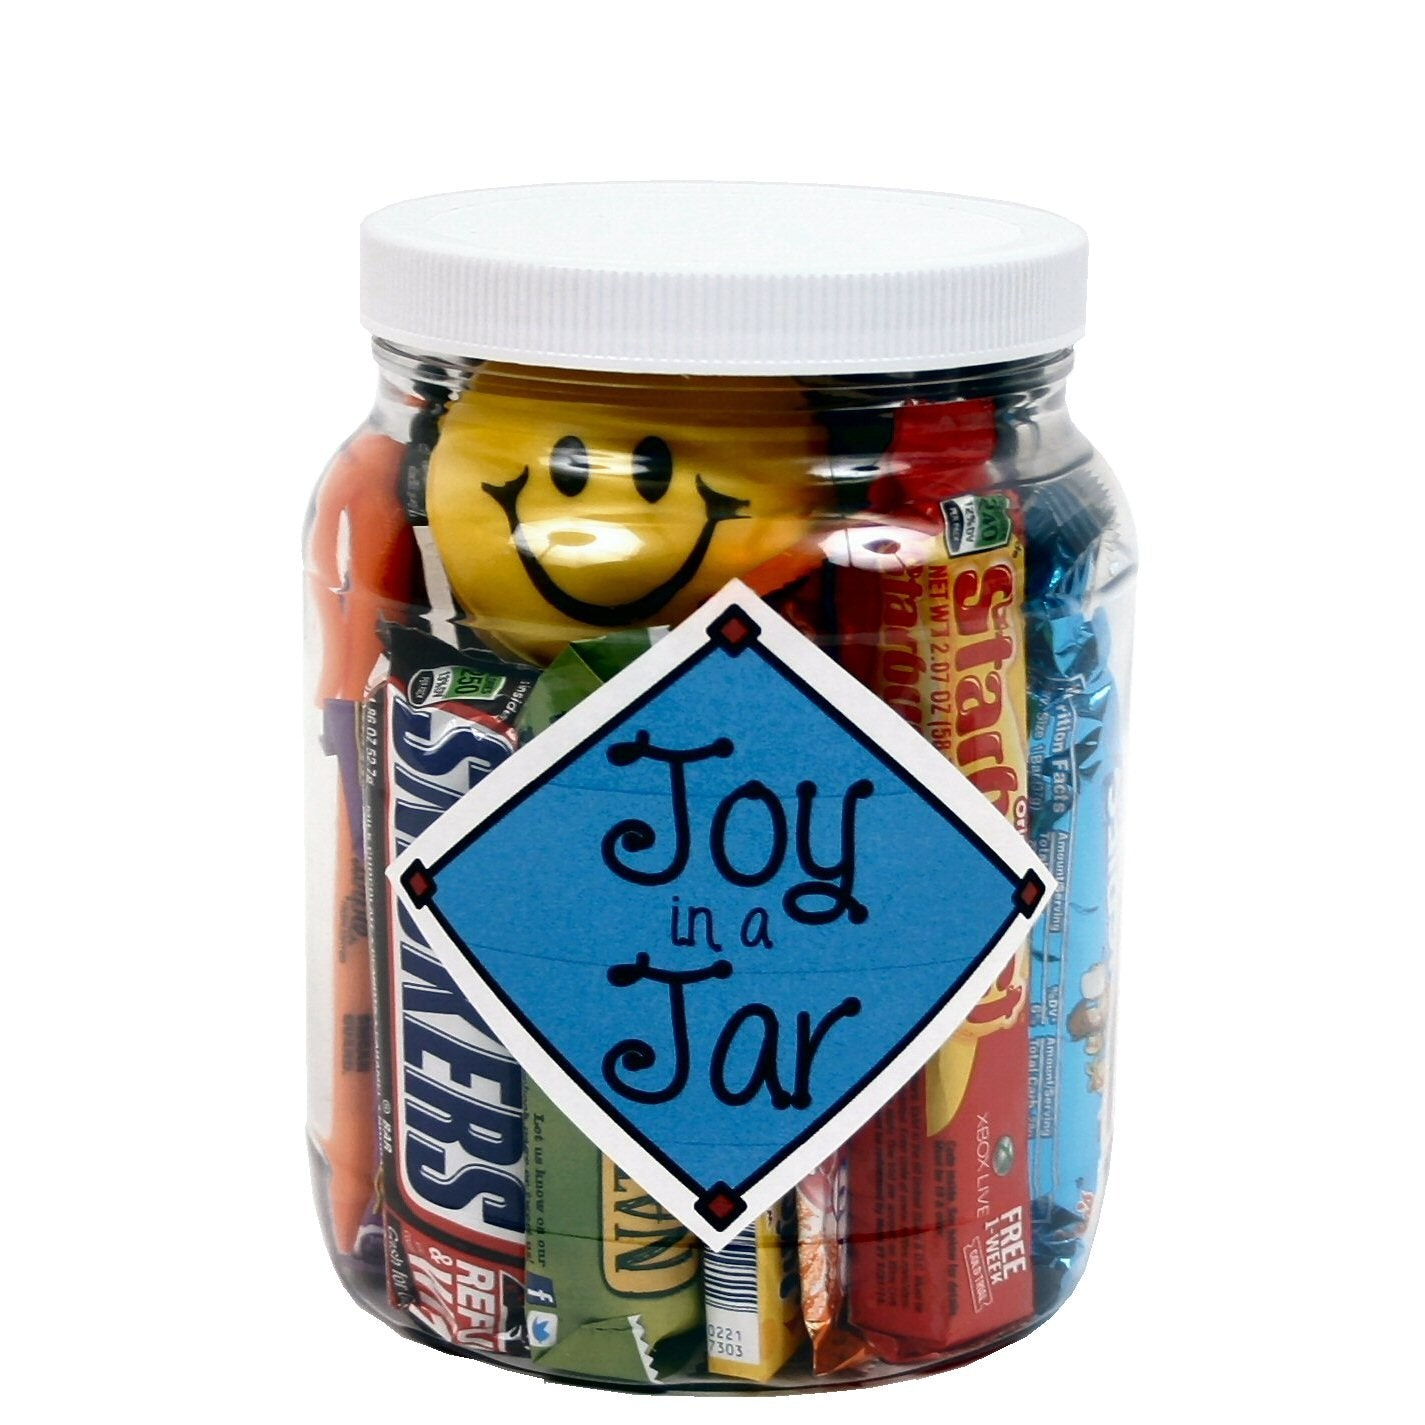 Joy in a Jar - beyondbookmarks.com